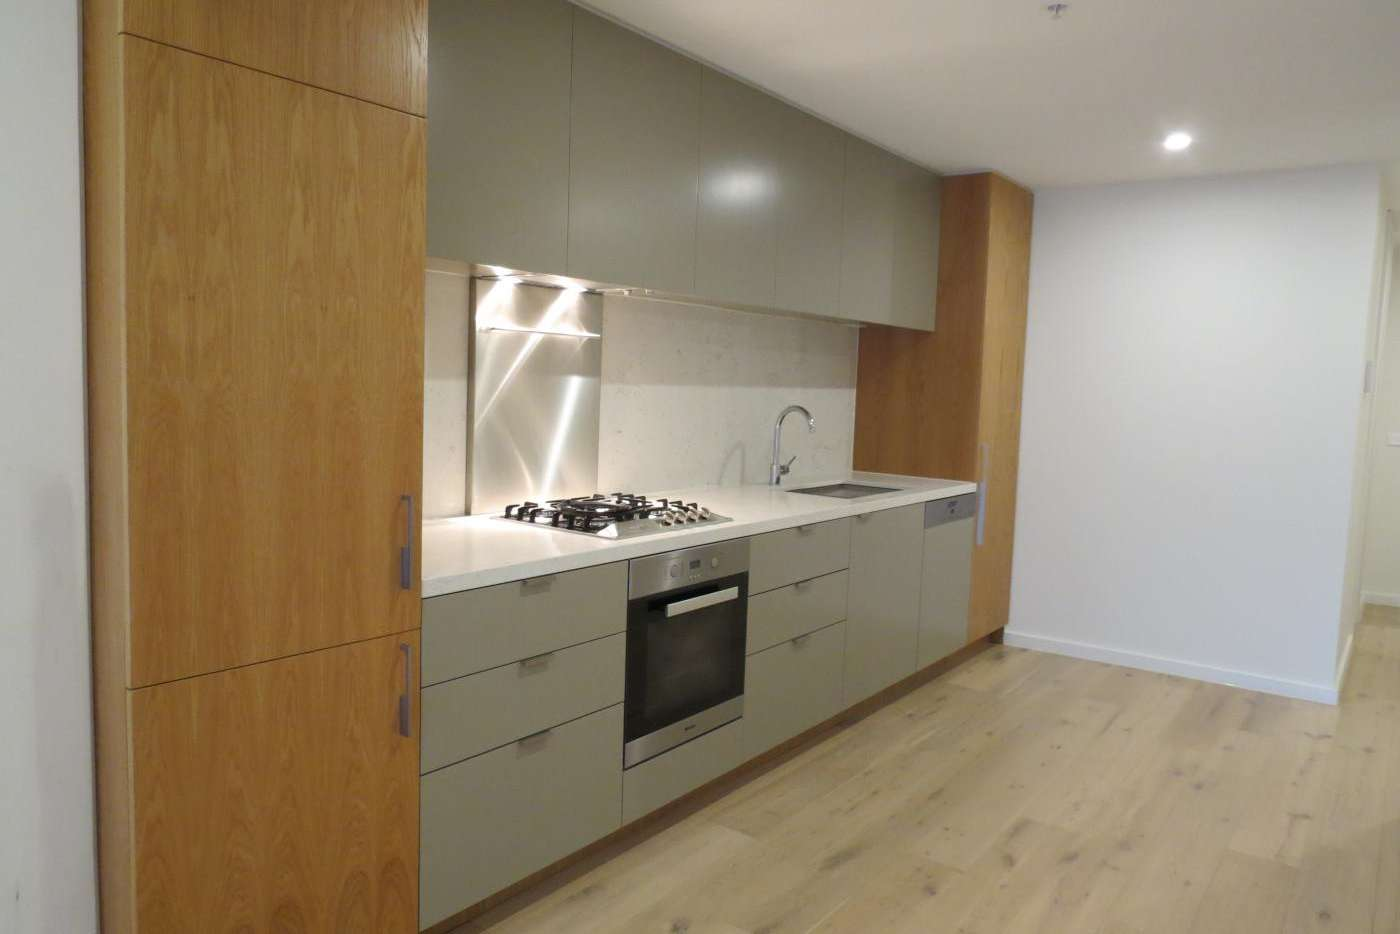 Main view of Homely apartment listing, 210/421 High Street, Northcote VIC 3070